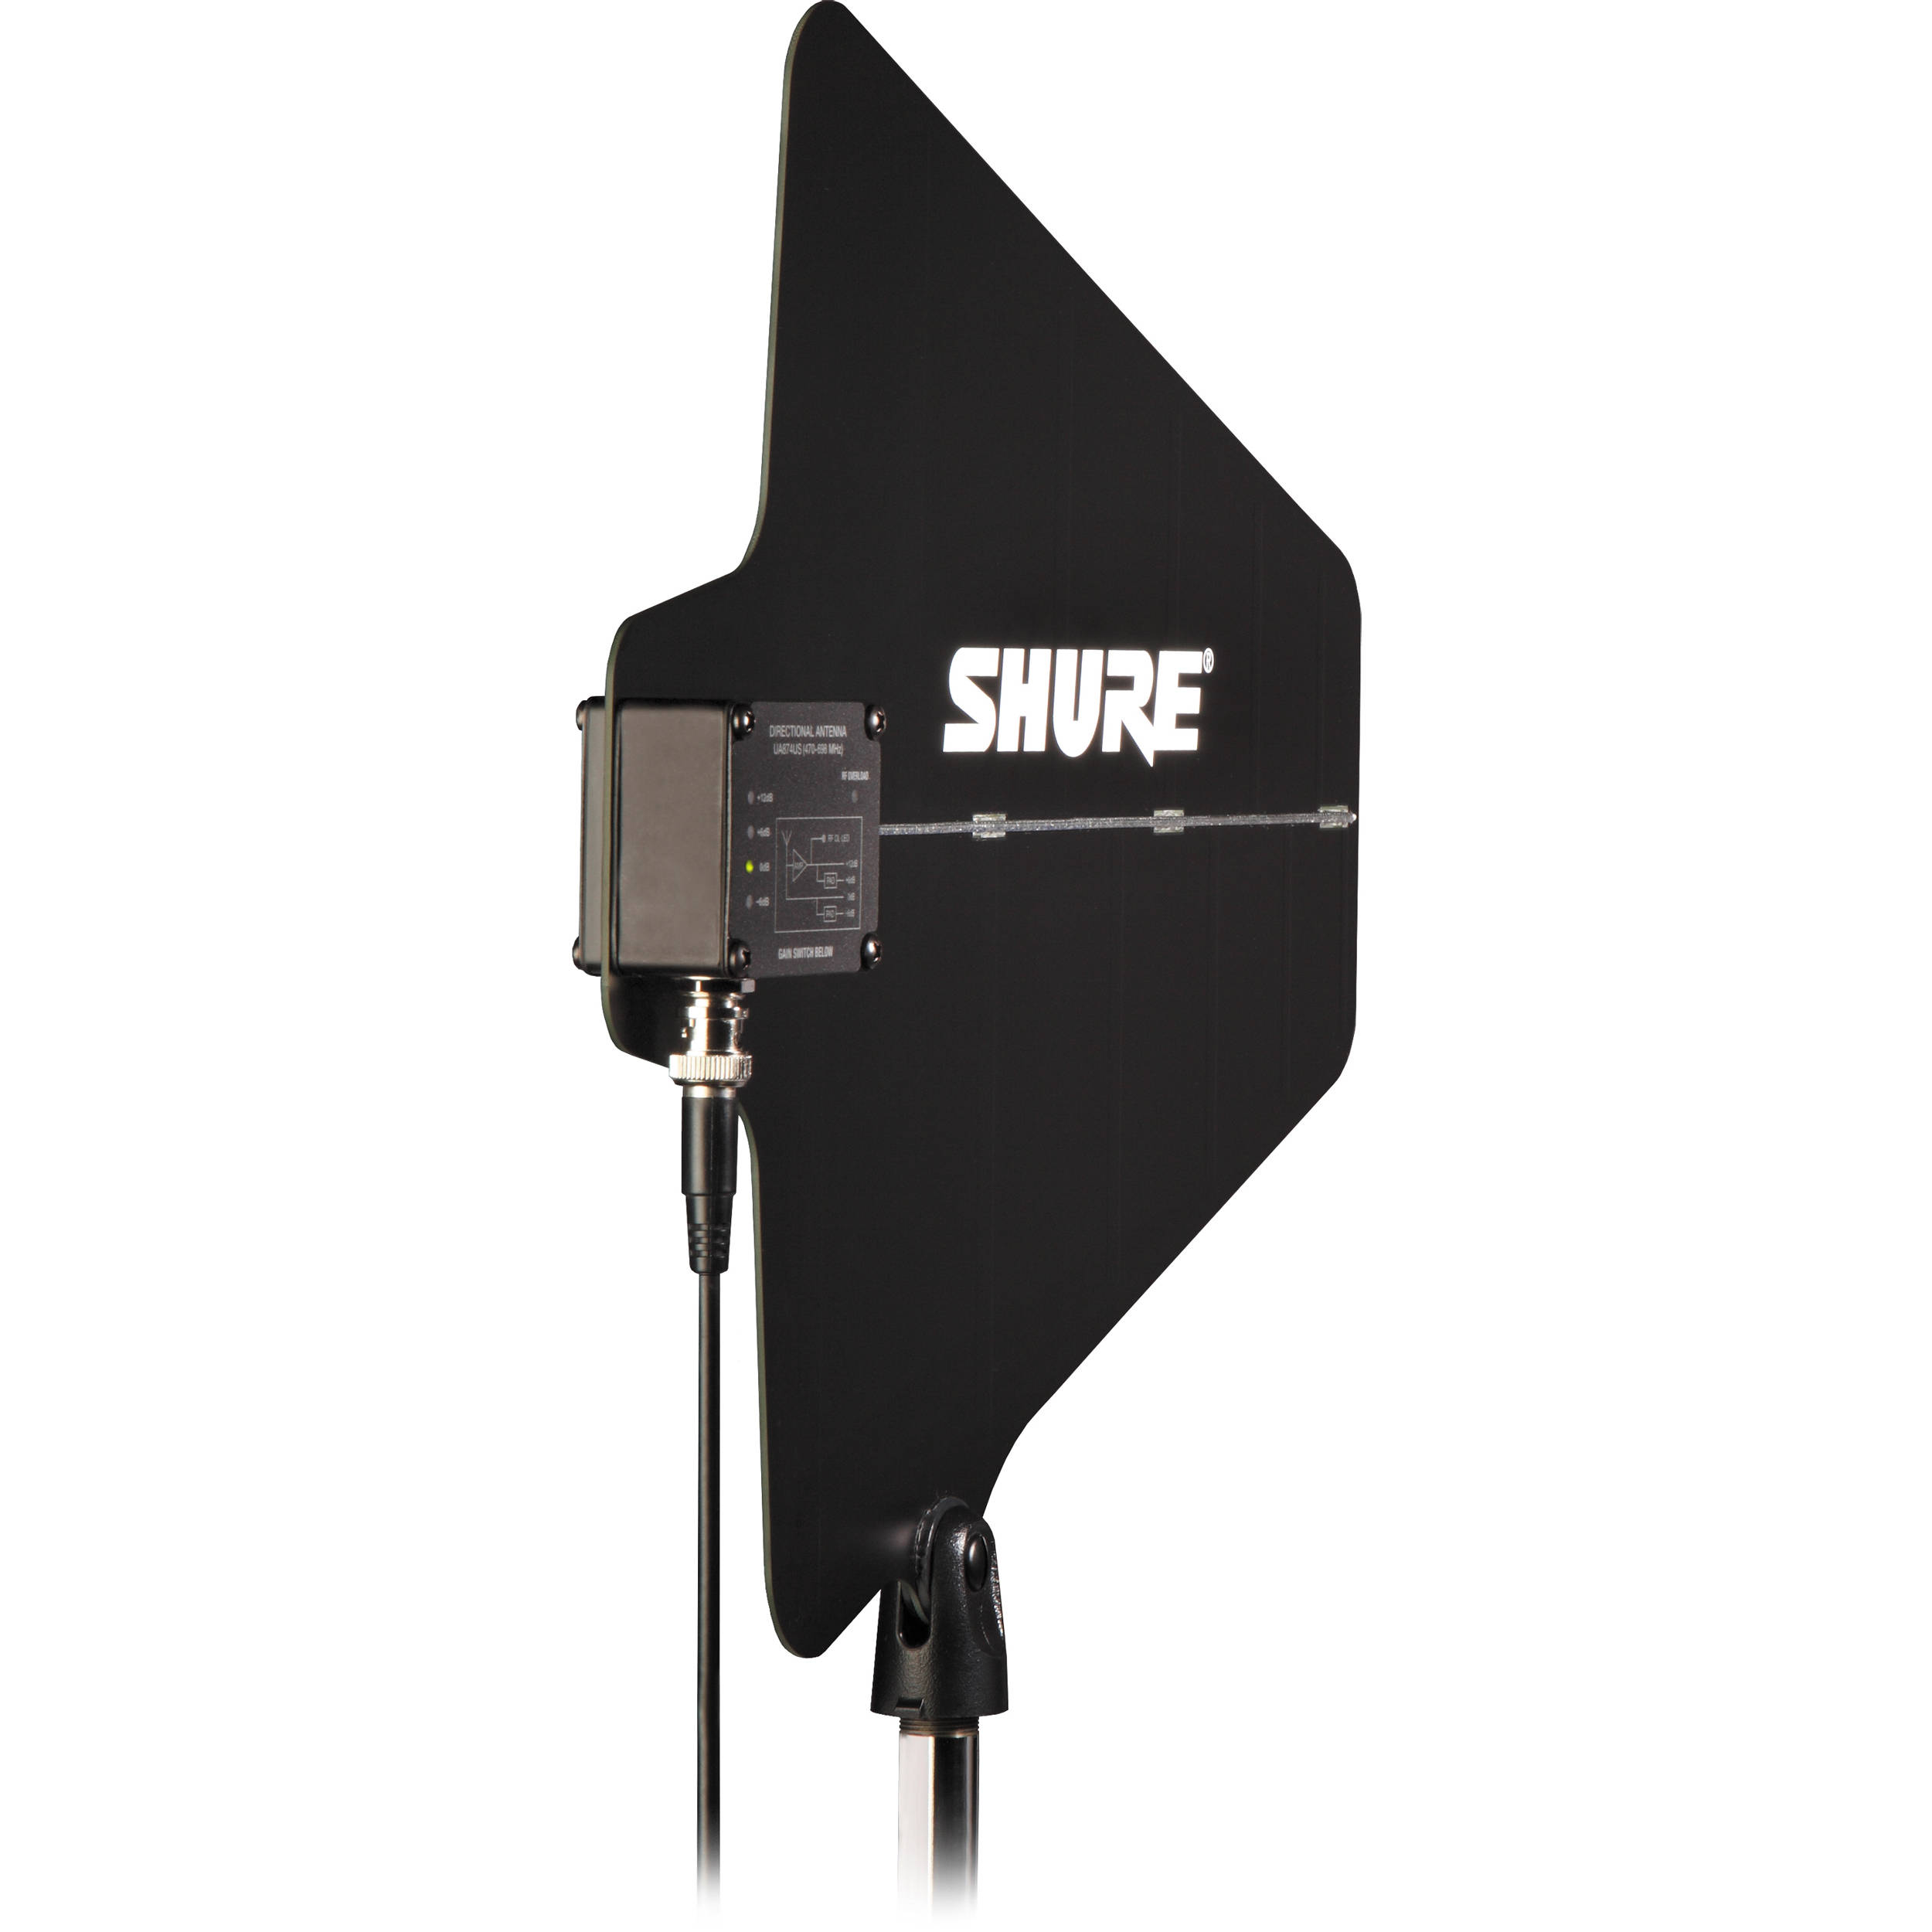 shure ua874 active directional antenna ua874us b h photo video. Black Bedroom Furniture Sets. Home Design Ideas